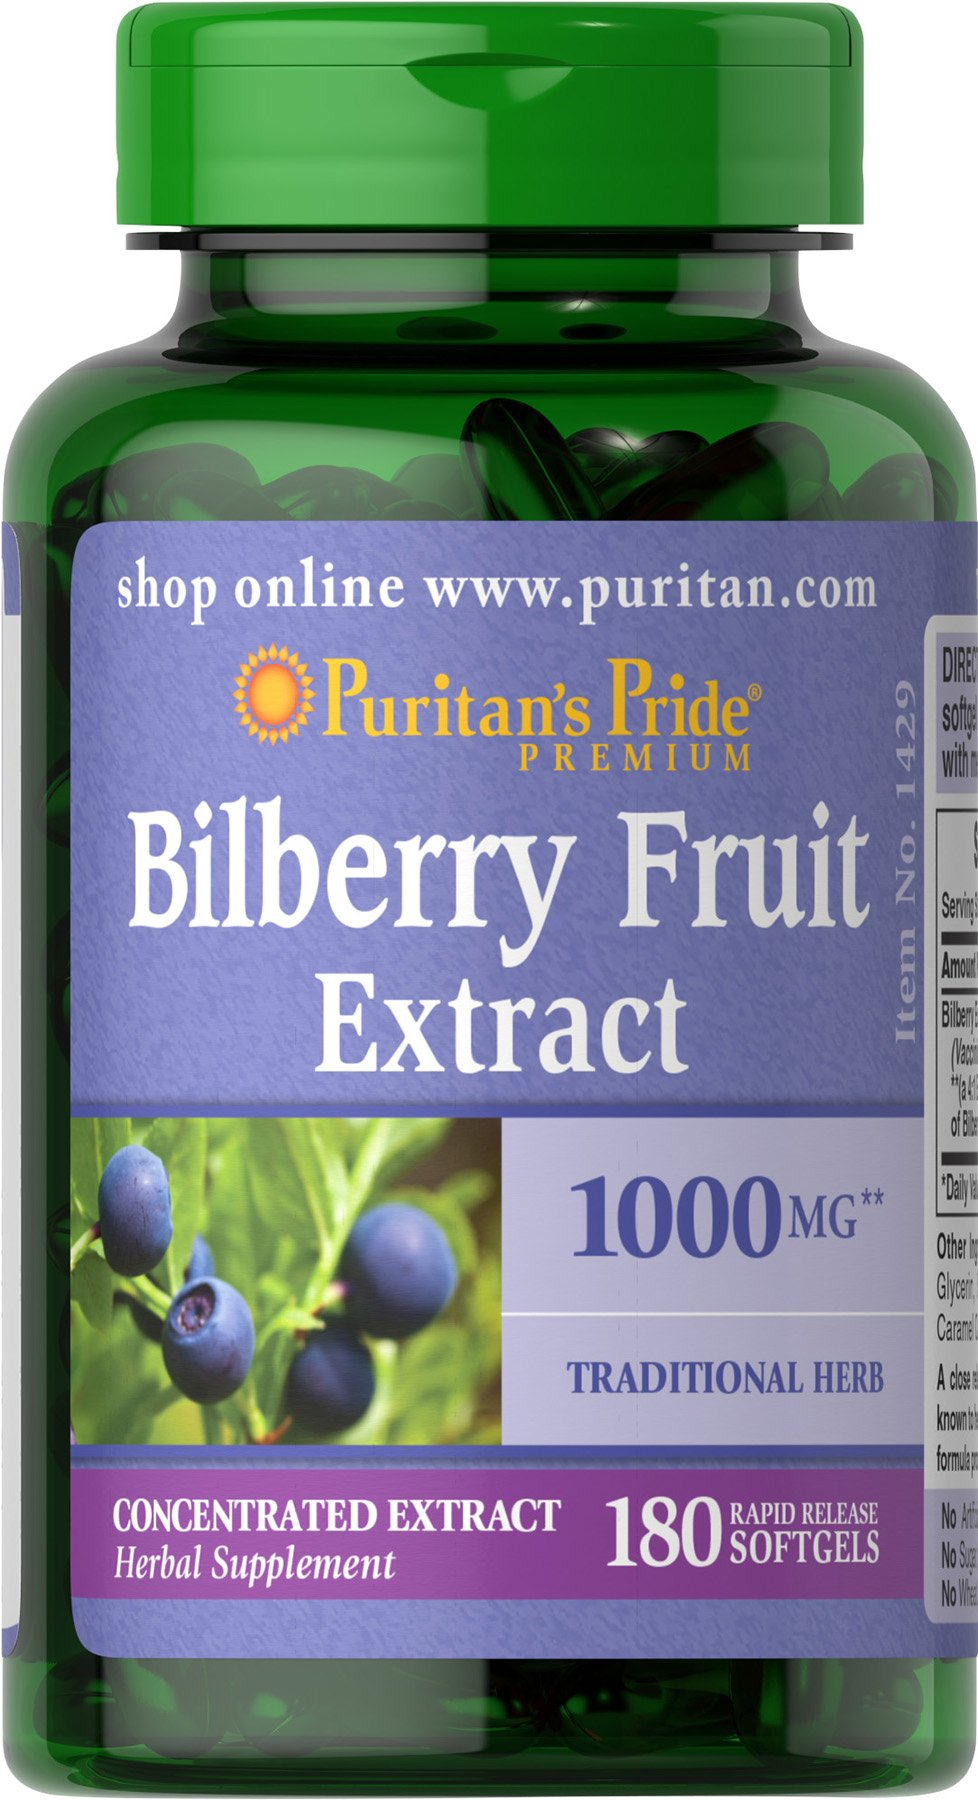 Bilberry Extract by Puritan's Pride®, Contains Antioxidant Properties*, 1000mg Equivalent, 180 Rapid Release Softgels